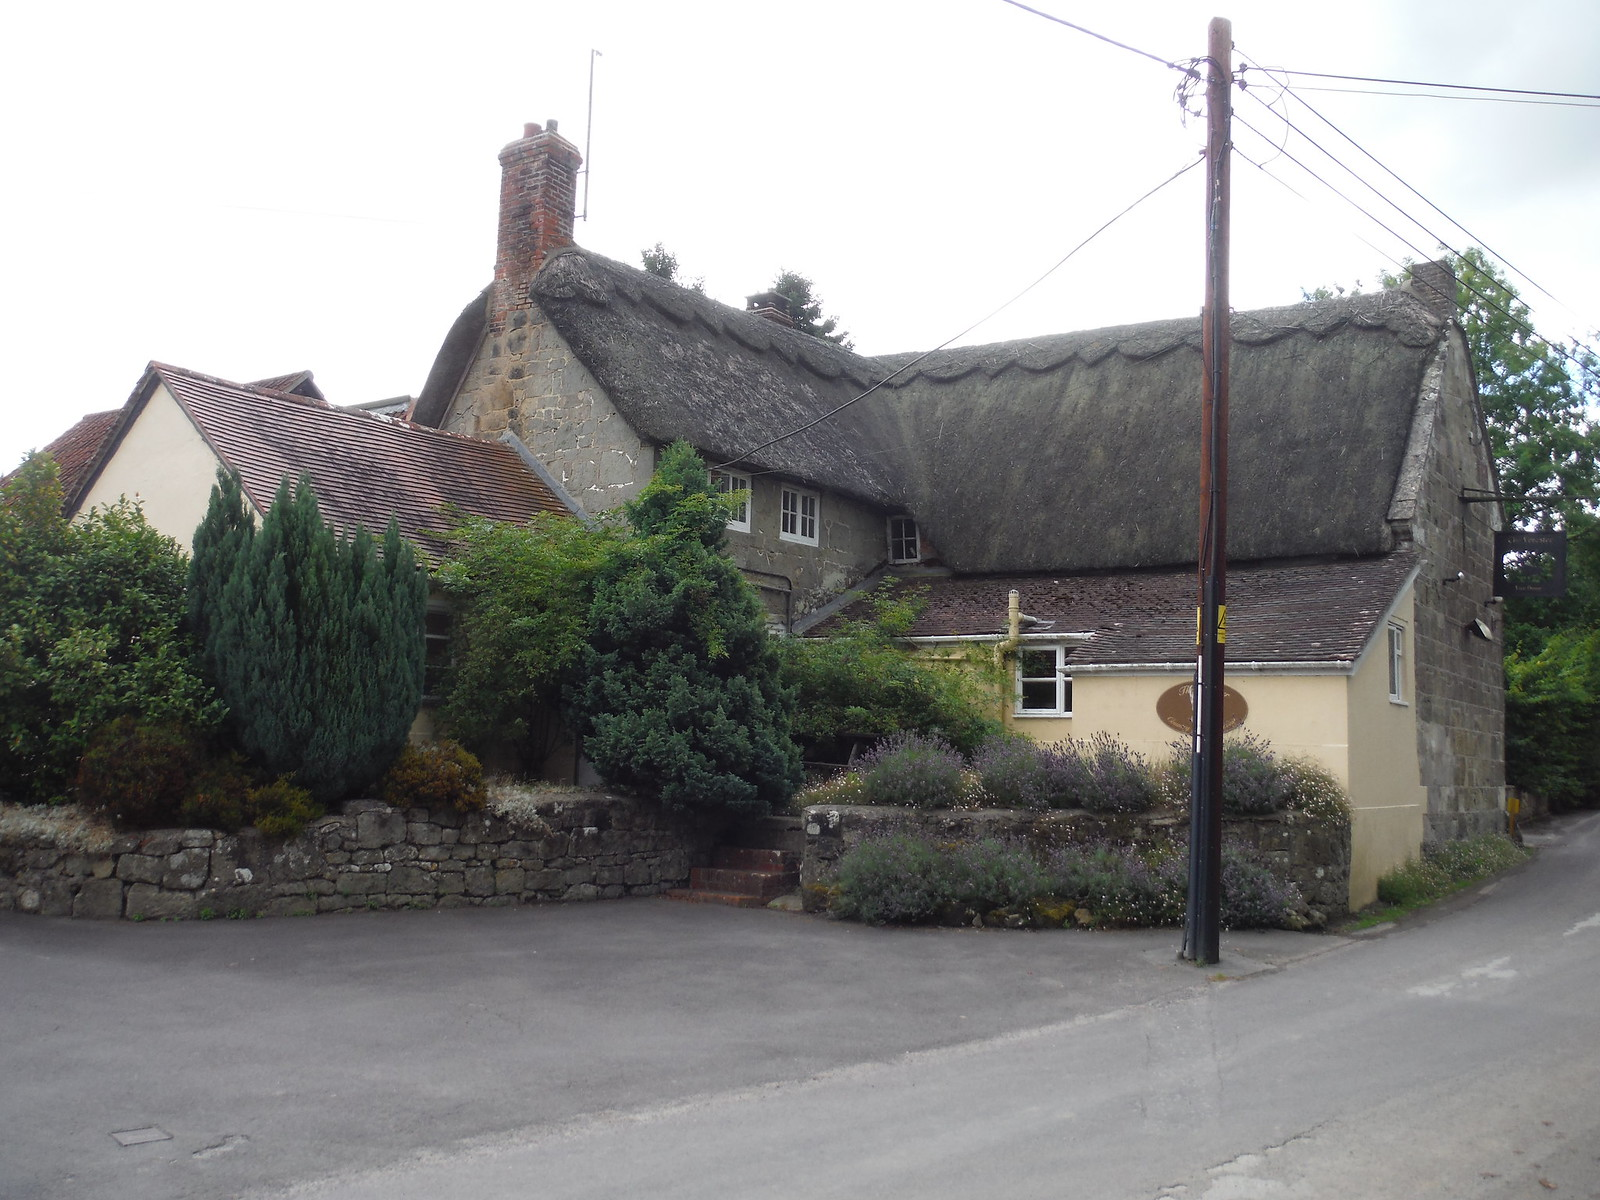 The Forester Inn, Donhead St. Andrew SWC Walk 252 Tisbury Circular via Donhead St. Andrew